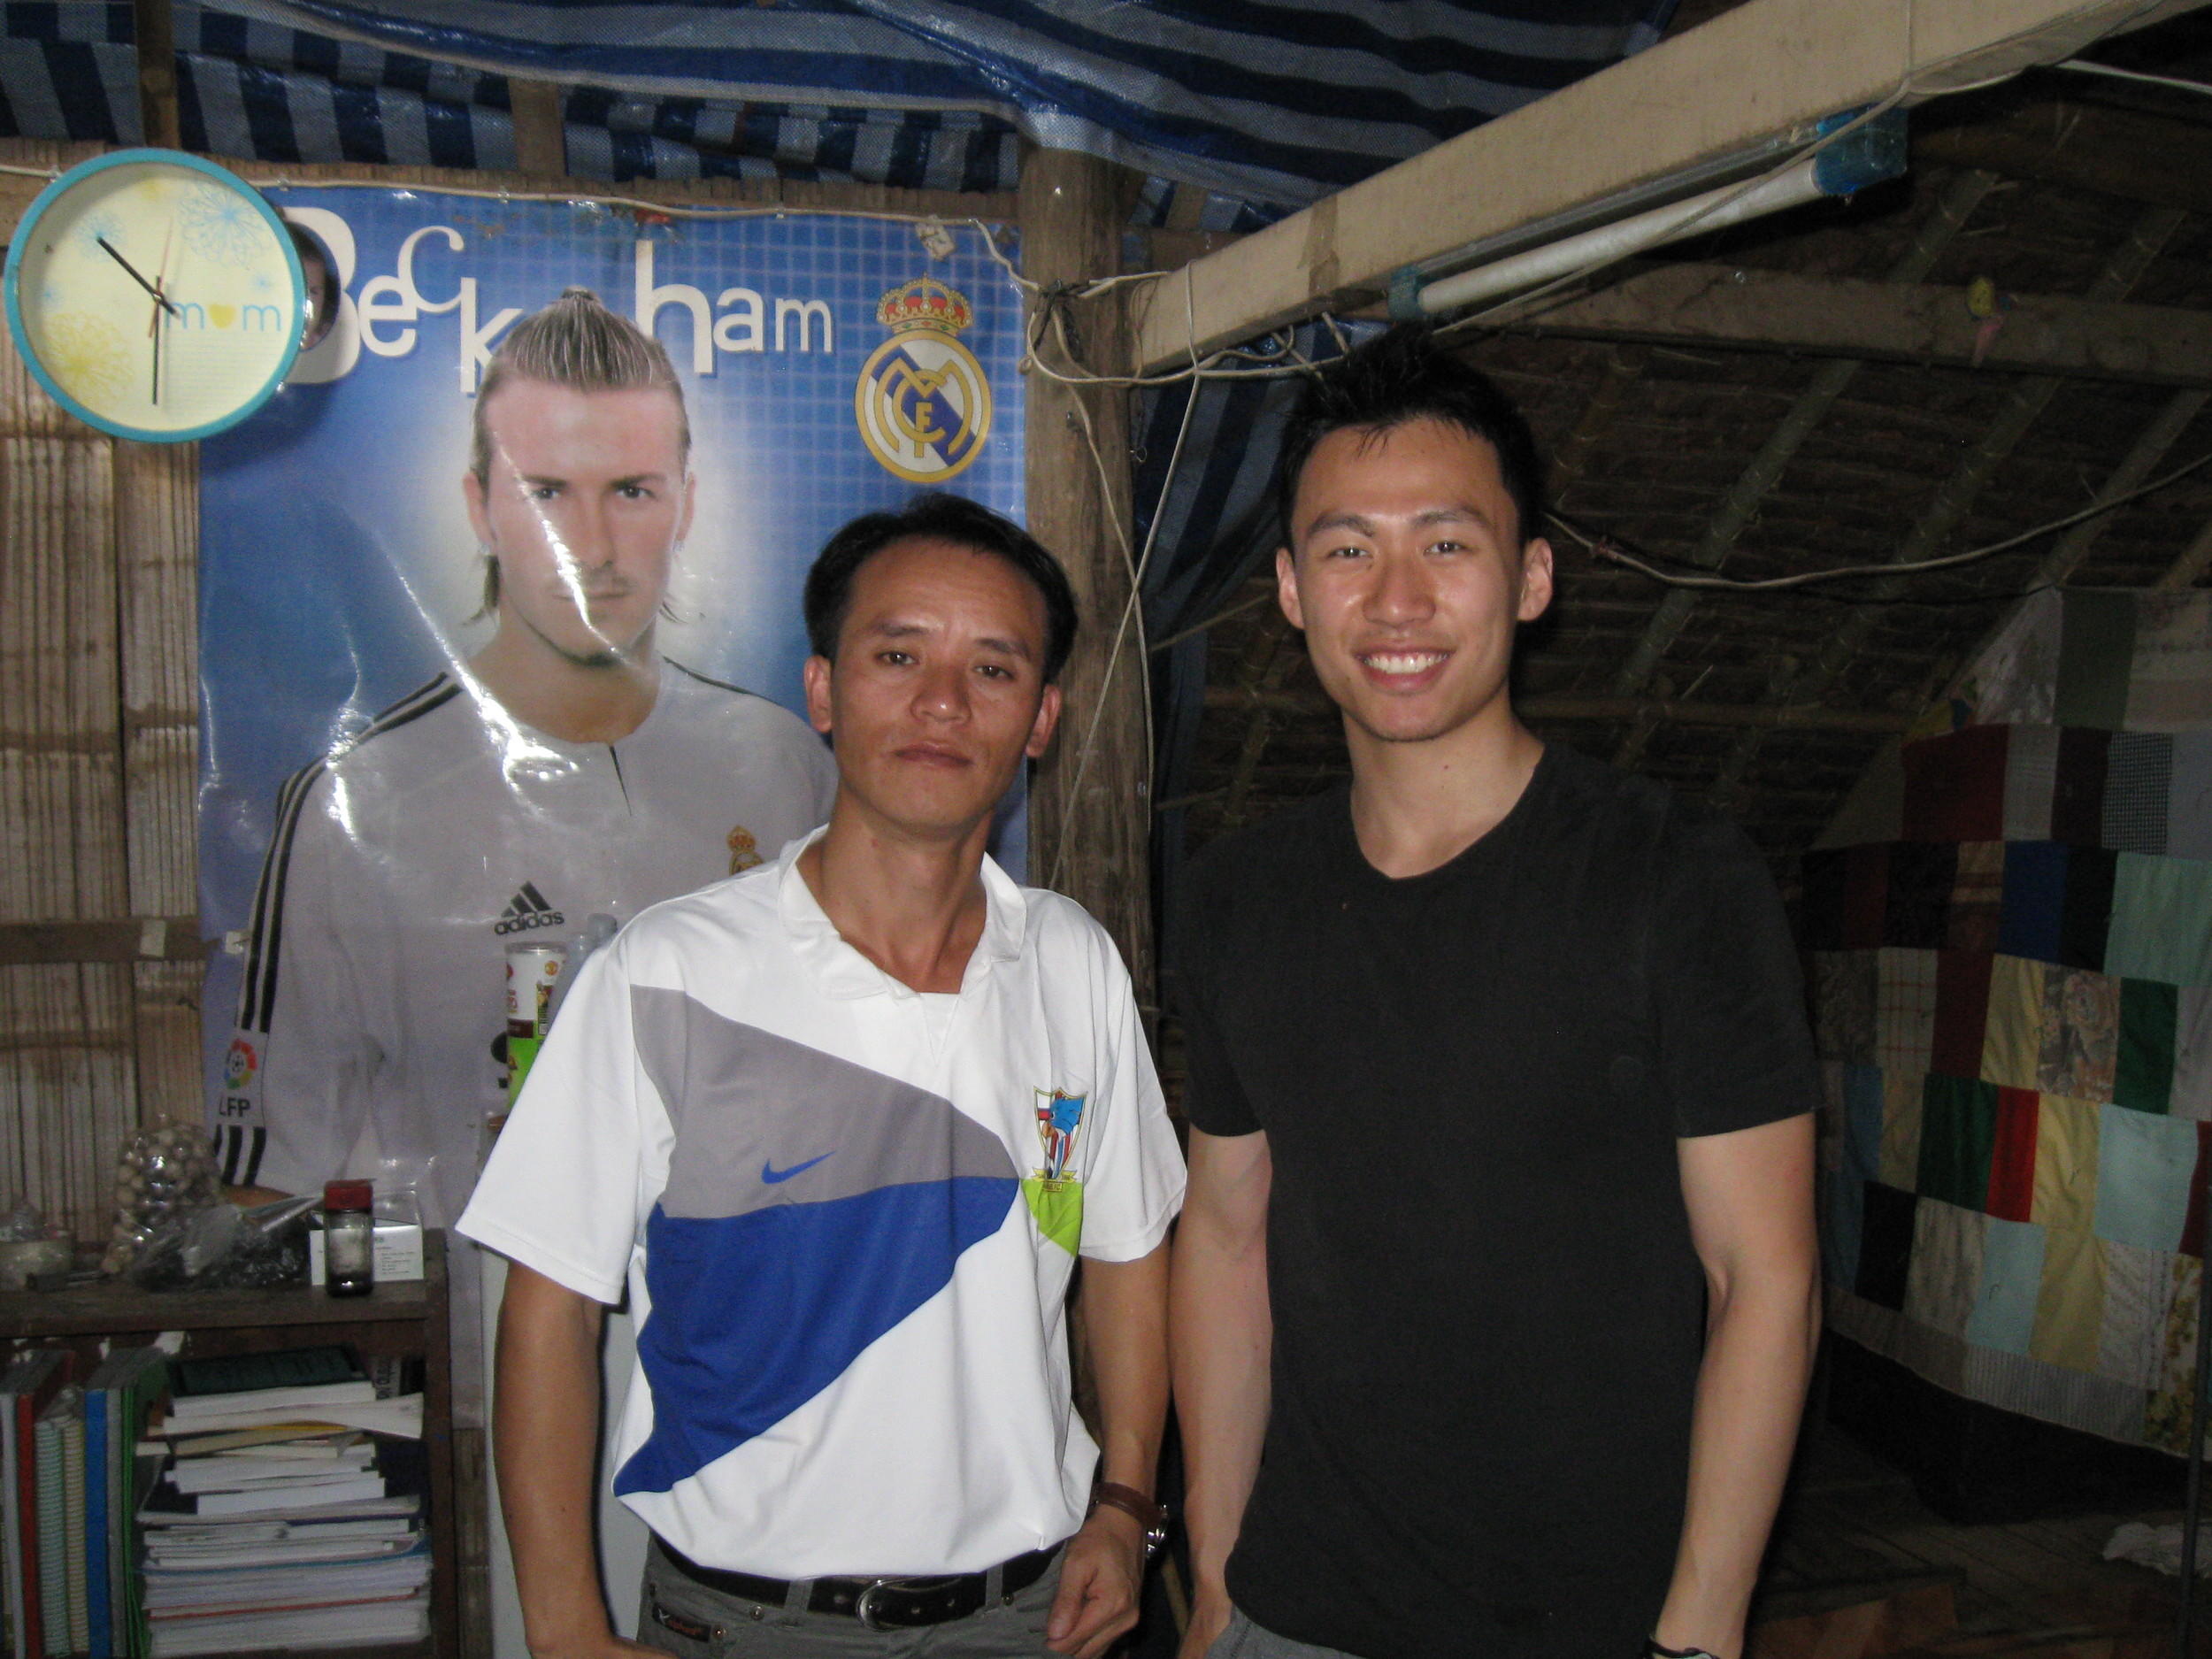 Sew Alwyn and I posing in front of his Beckham poster. He is an avid soccer fan.